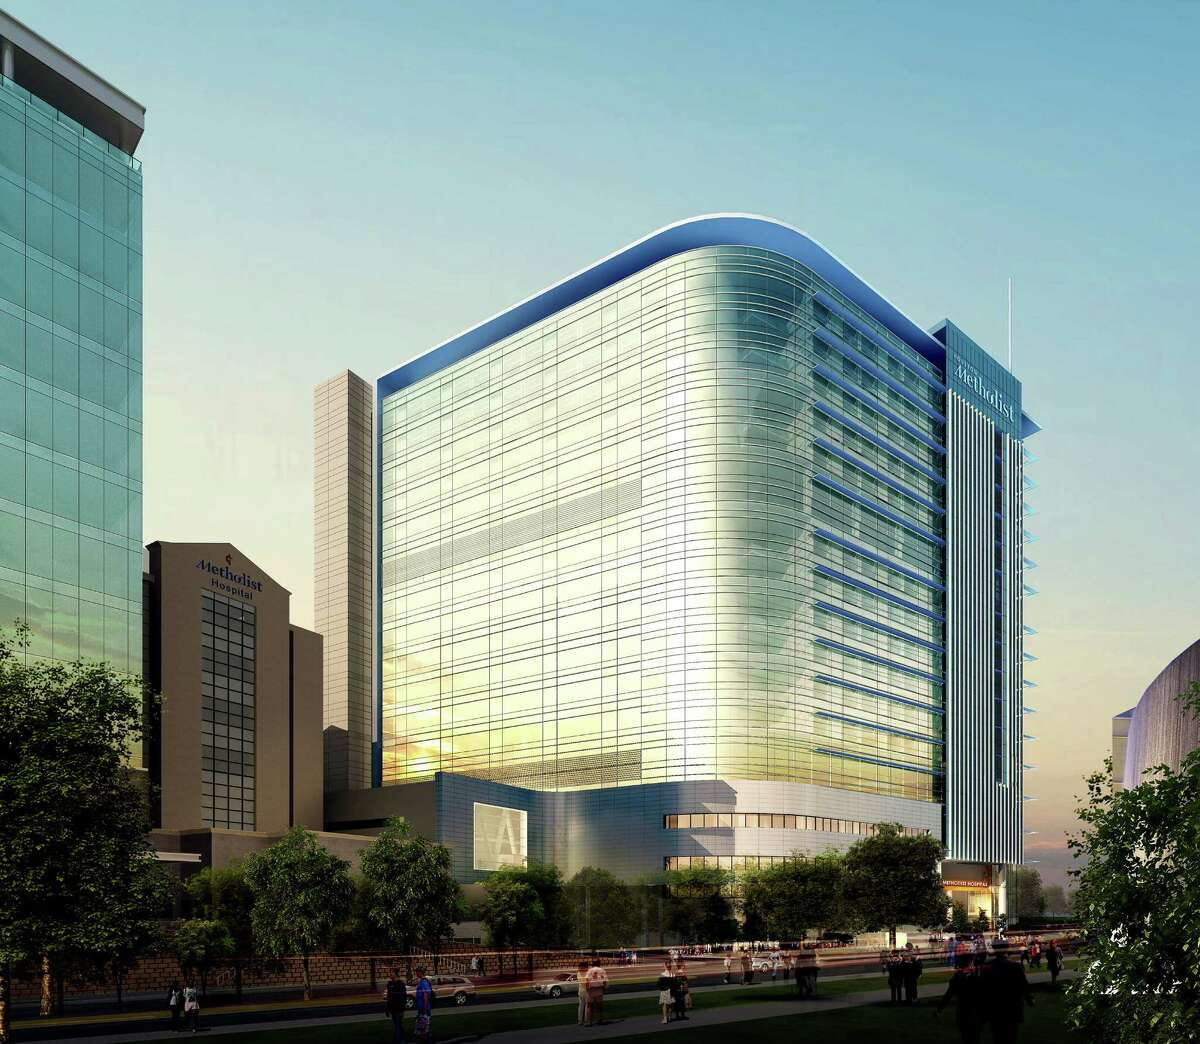 Houston Methodist produced renderings of their new tower in the Texas Medical Center. The $700-million North Tower is expected to be completed by 2017.